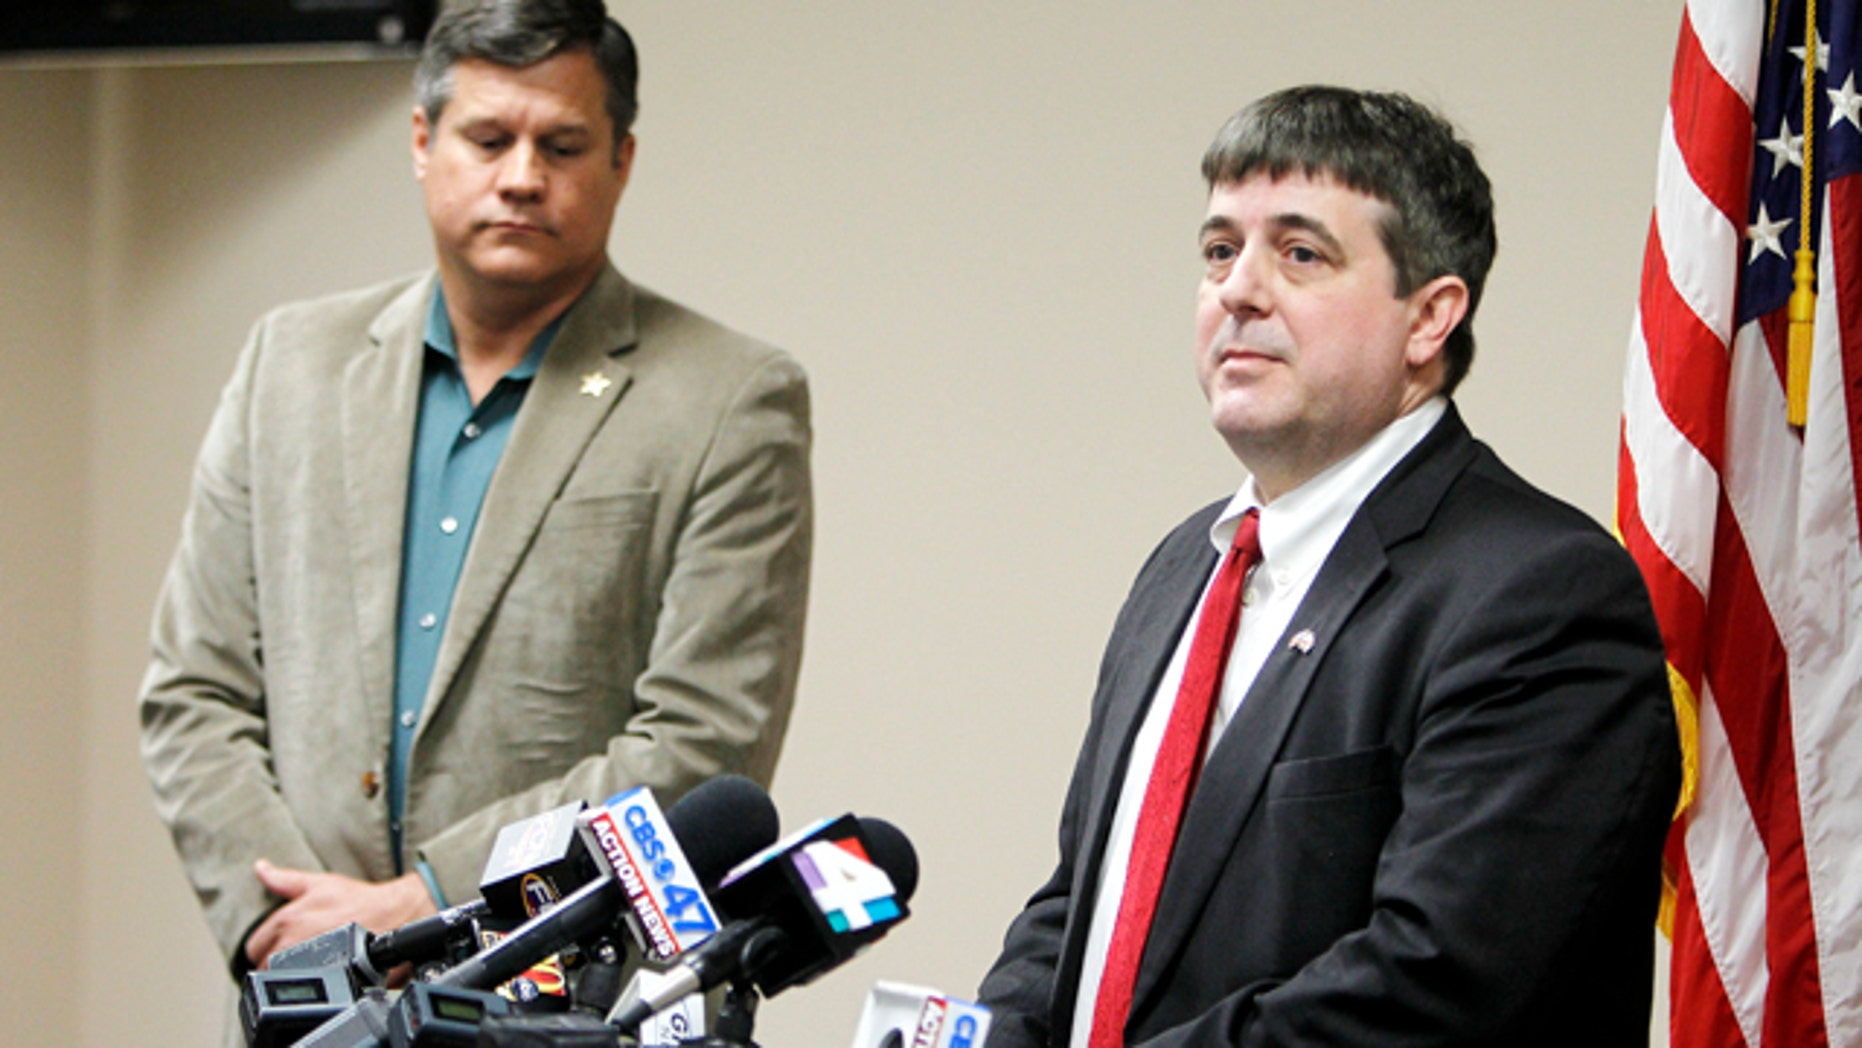 Jan. 7, 2015: Columbia County State Attorney Jeff Seigmeister speaks during a press conference in Lake City, Fla. about two Columbia County girls accused of killing their brother. Columbia County Sheriff Mark Hunter, left, also spoke. (AP Photo/Matt Stamey, The Gainesville Sun)